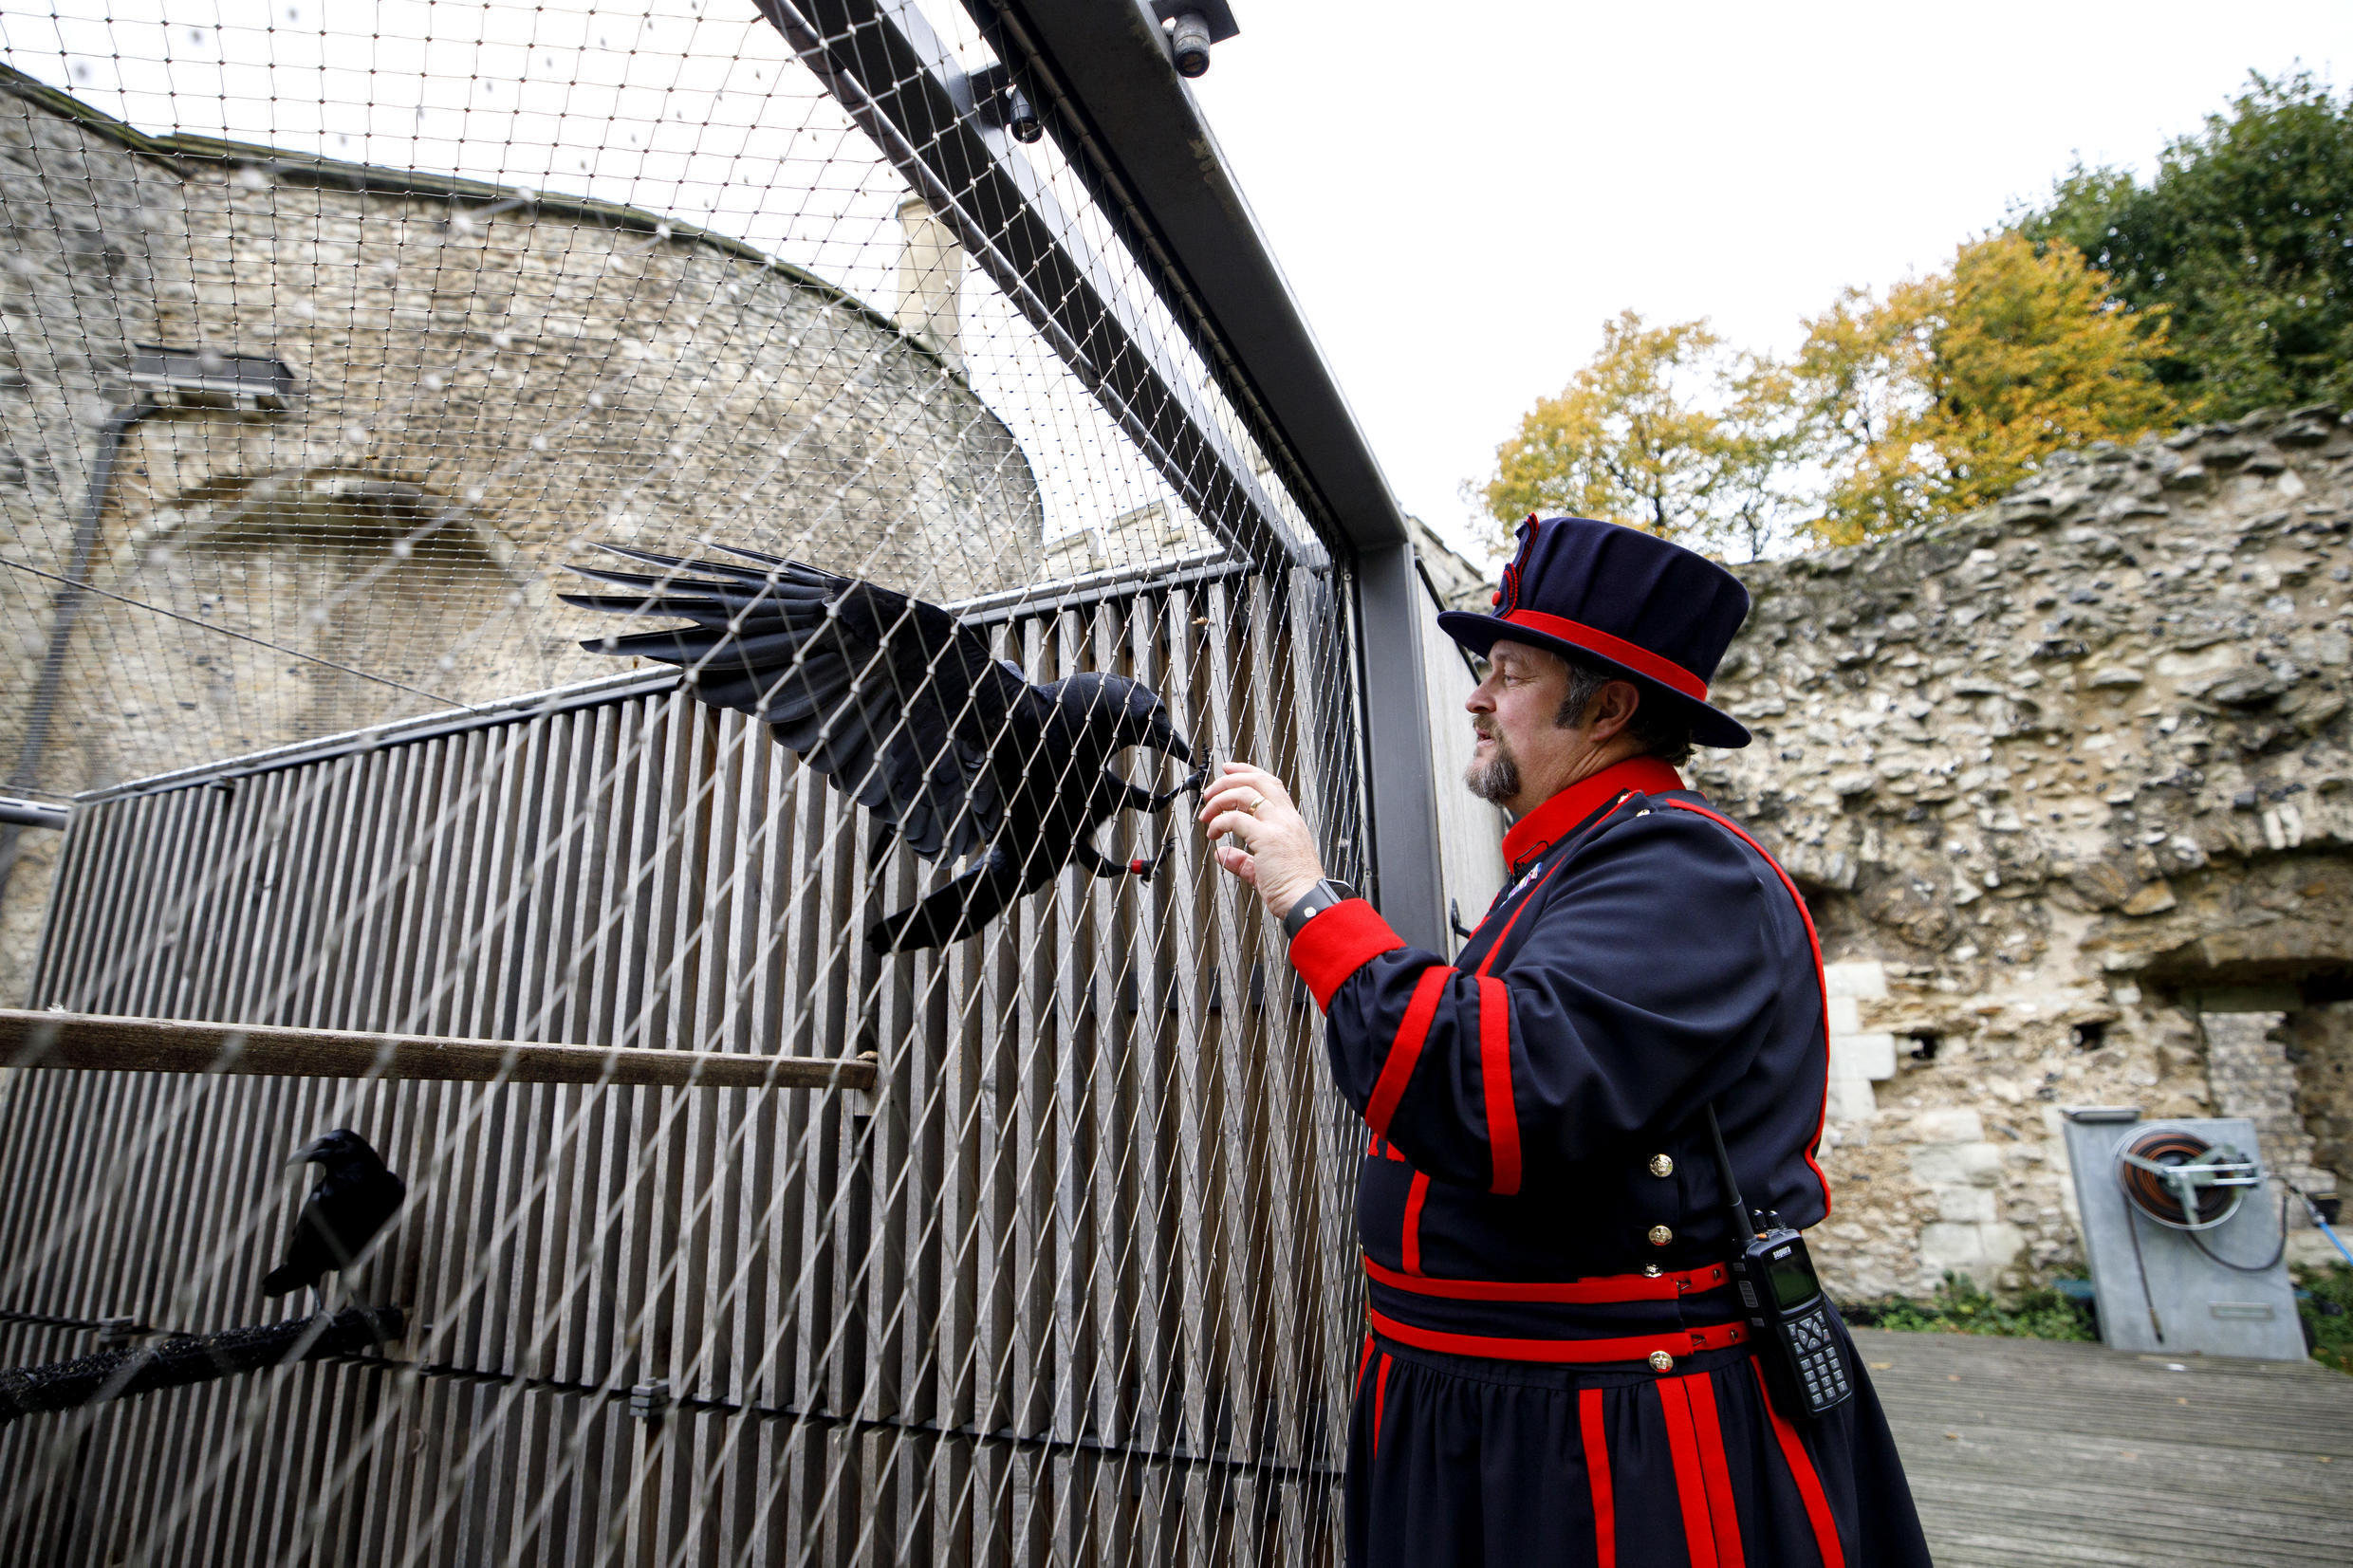 Yeoman Warder Ravenmaster Chris Skaife poses with a raven at the Tower of London in central London in October last year.